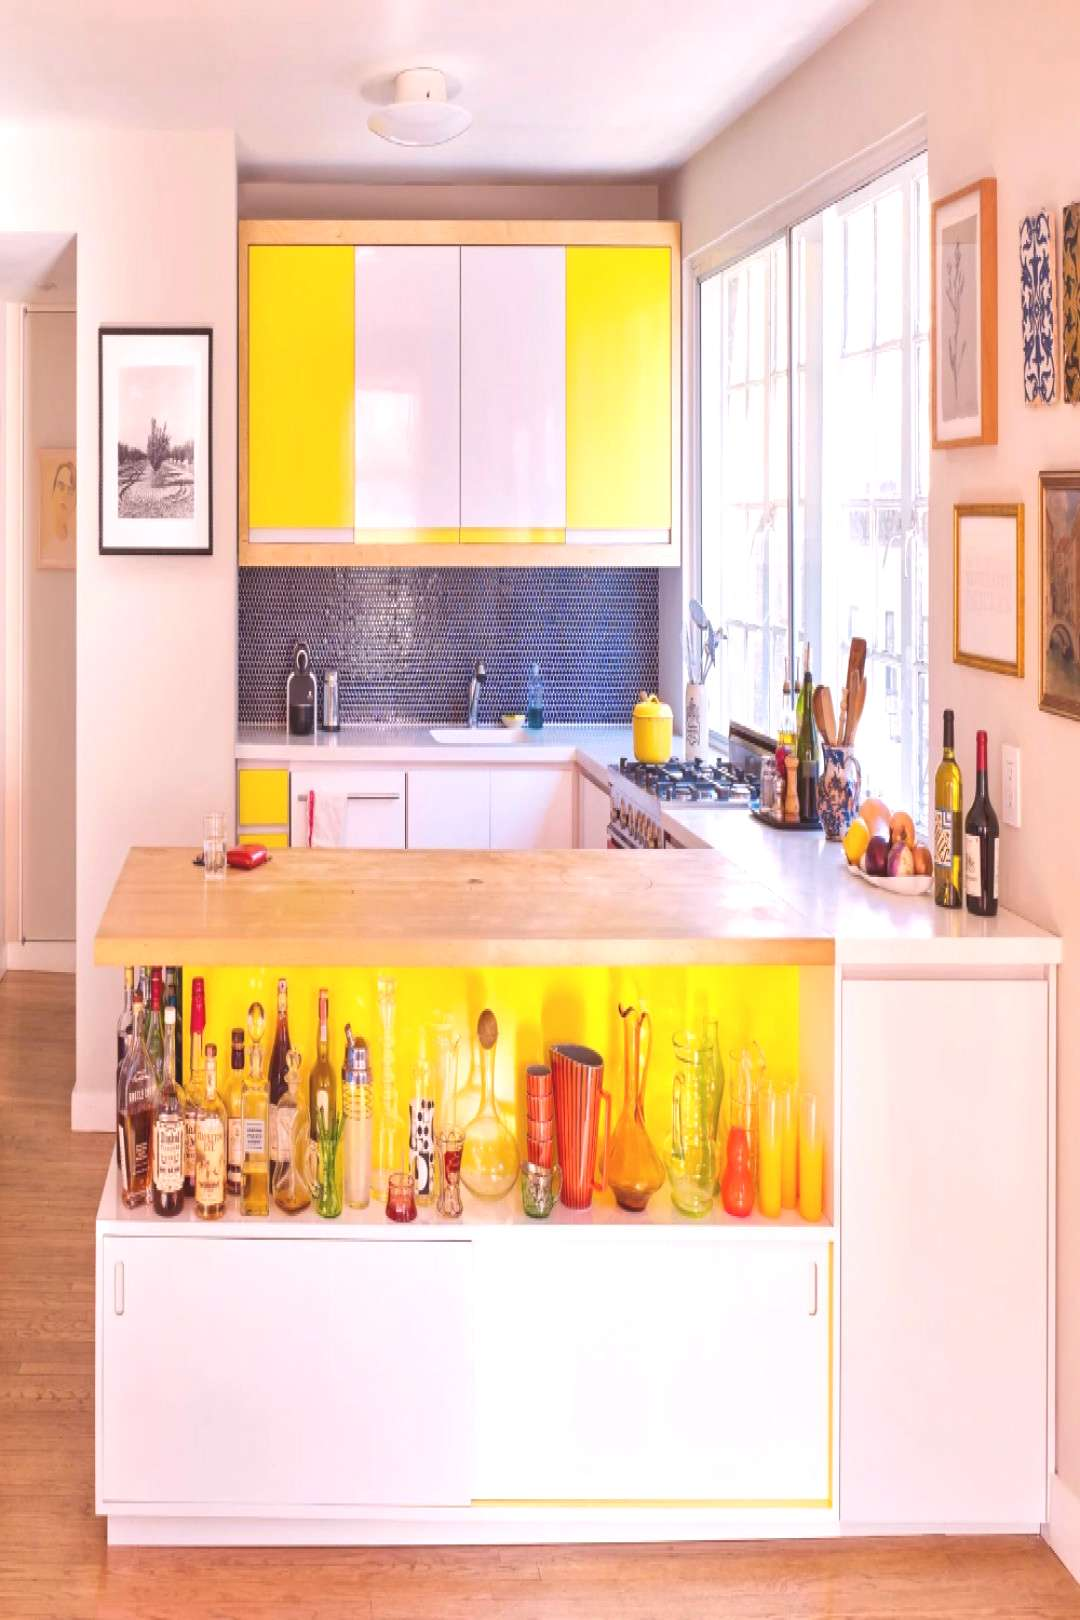 The 6 Design Truths We Learned From This Photographer's Bright, Bold Apartment The 6 Design Truth